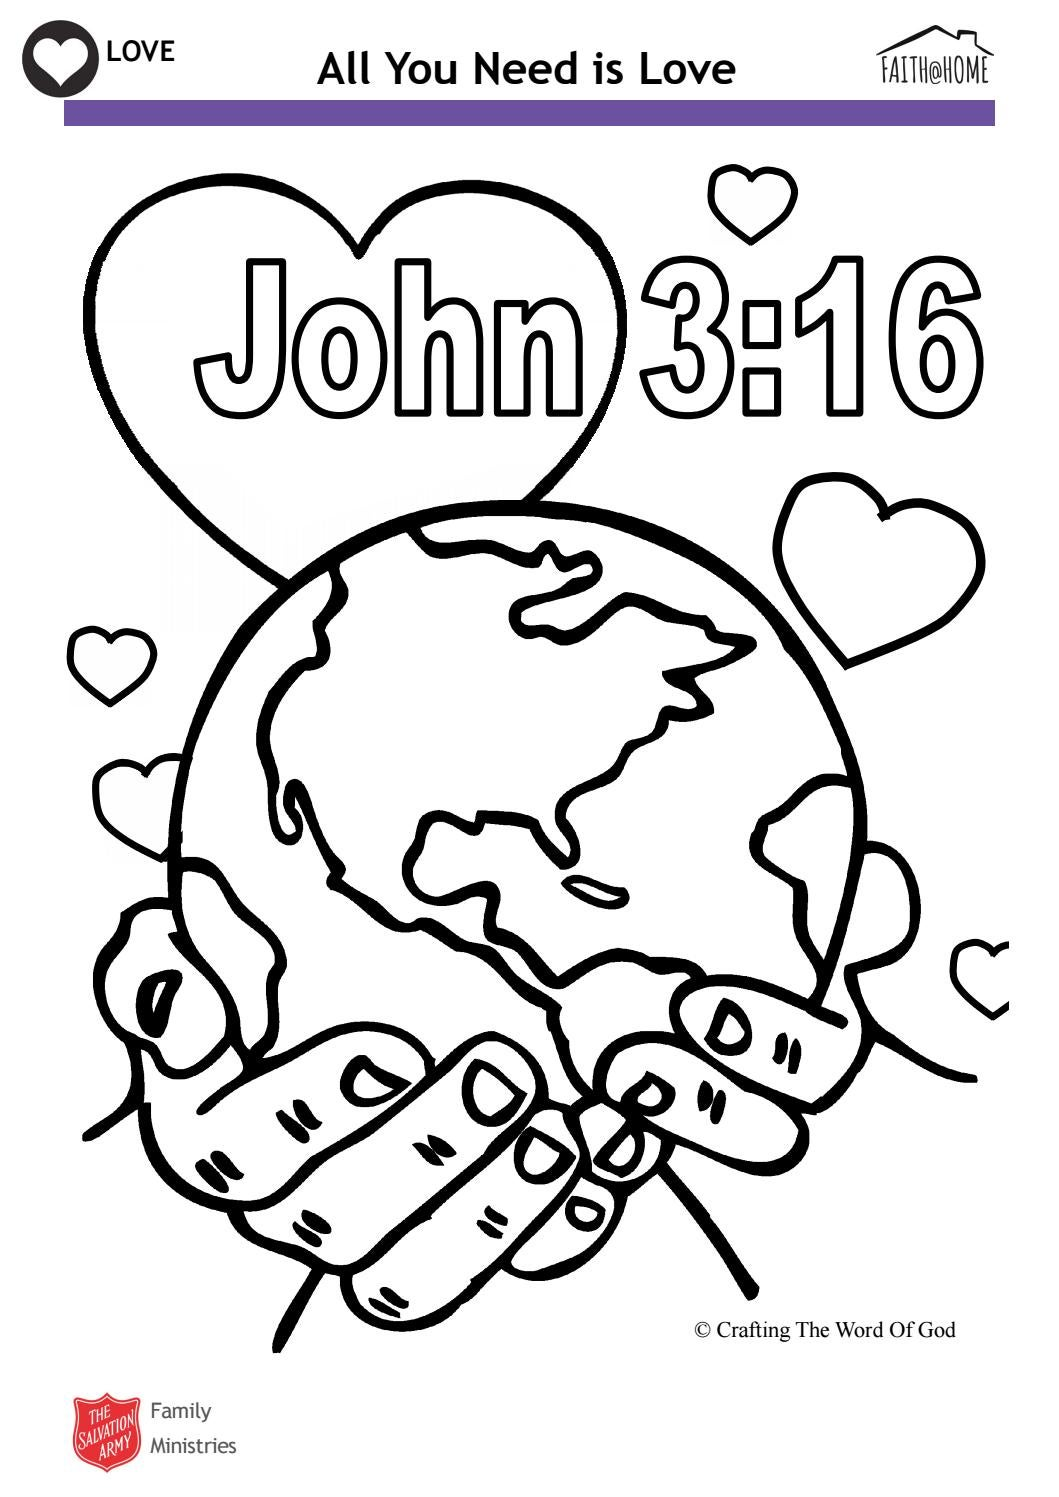 love john 3 16 bible colouring activity faith home by the salvation army uk territory with the republic of ireland issuu love john 3 16 bible colouring